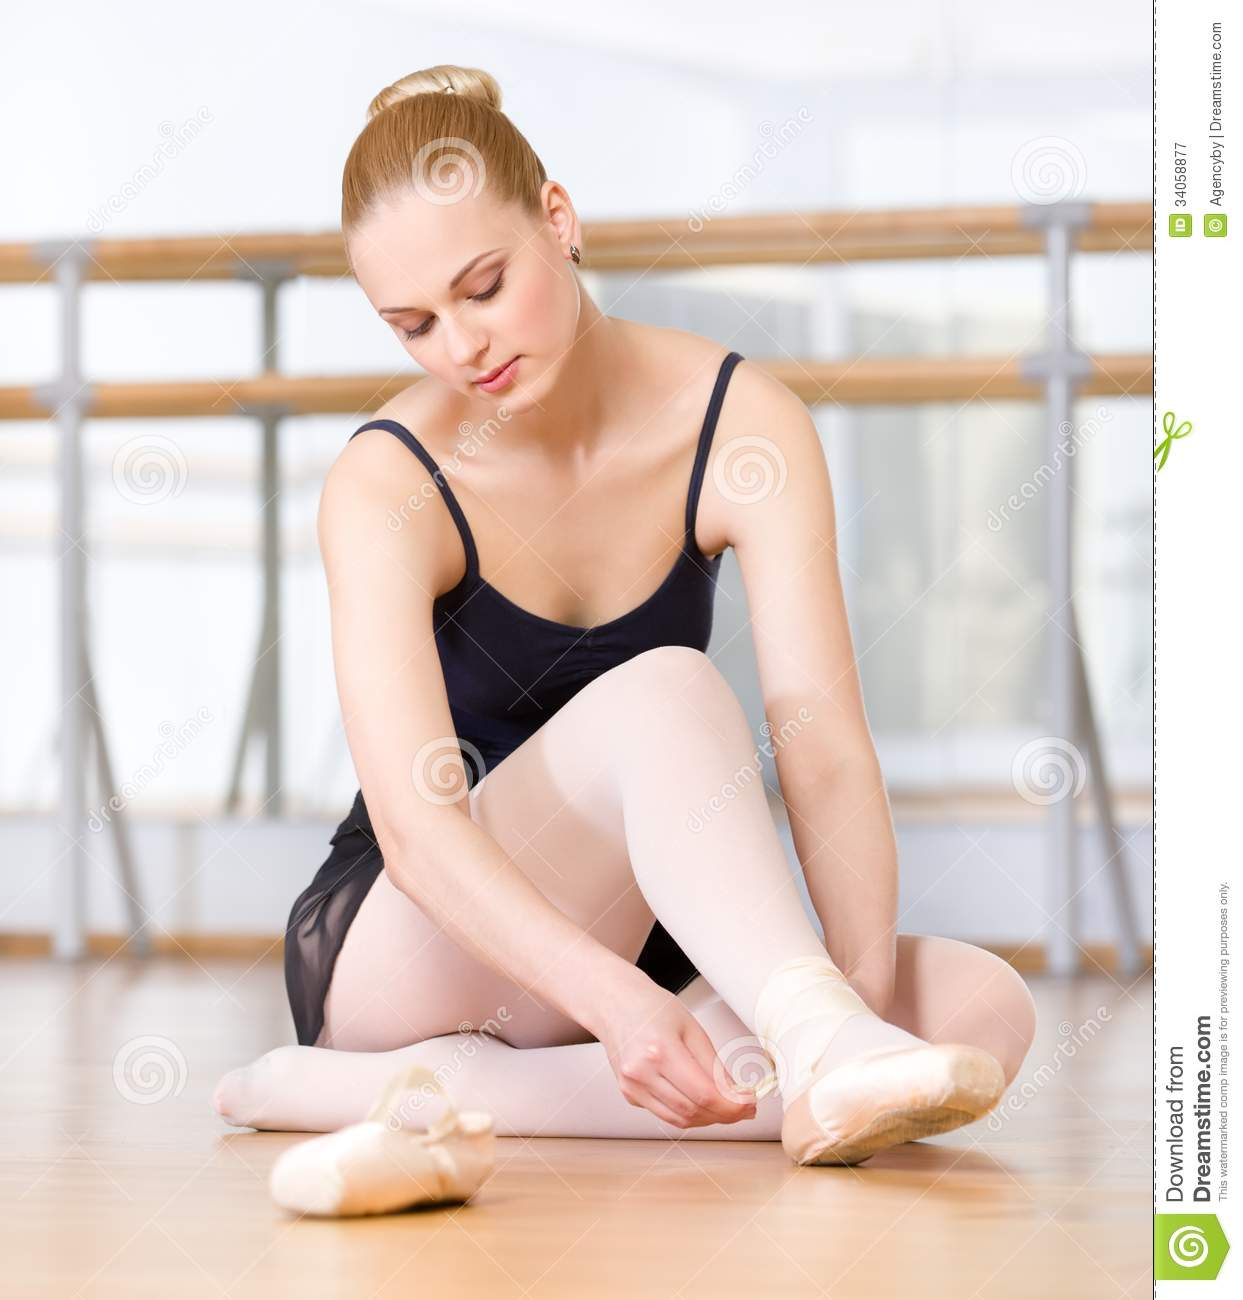 Royalty Free Stock Photography Ballet Dancer Laces Ribbons Pointes Sitting Wooden Floor Ballerina Image34058877 on Dance Studio Floor Plans